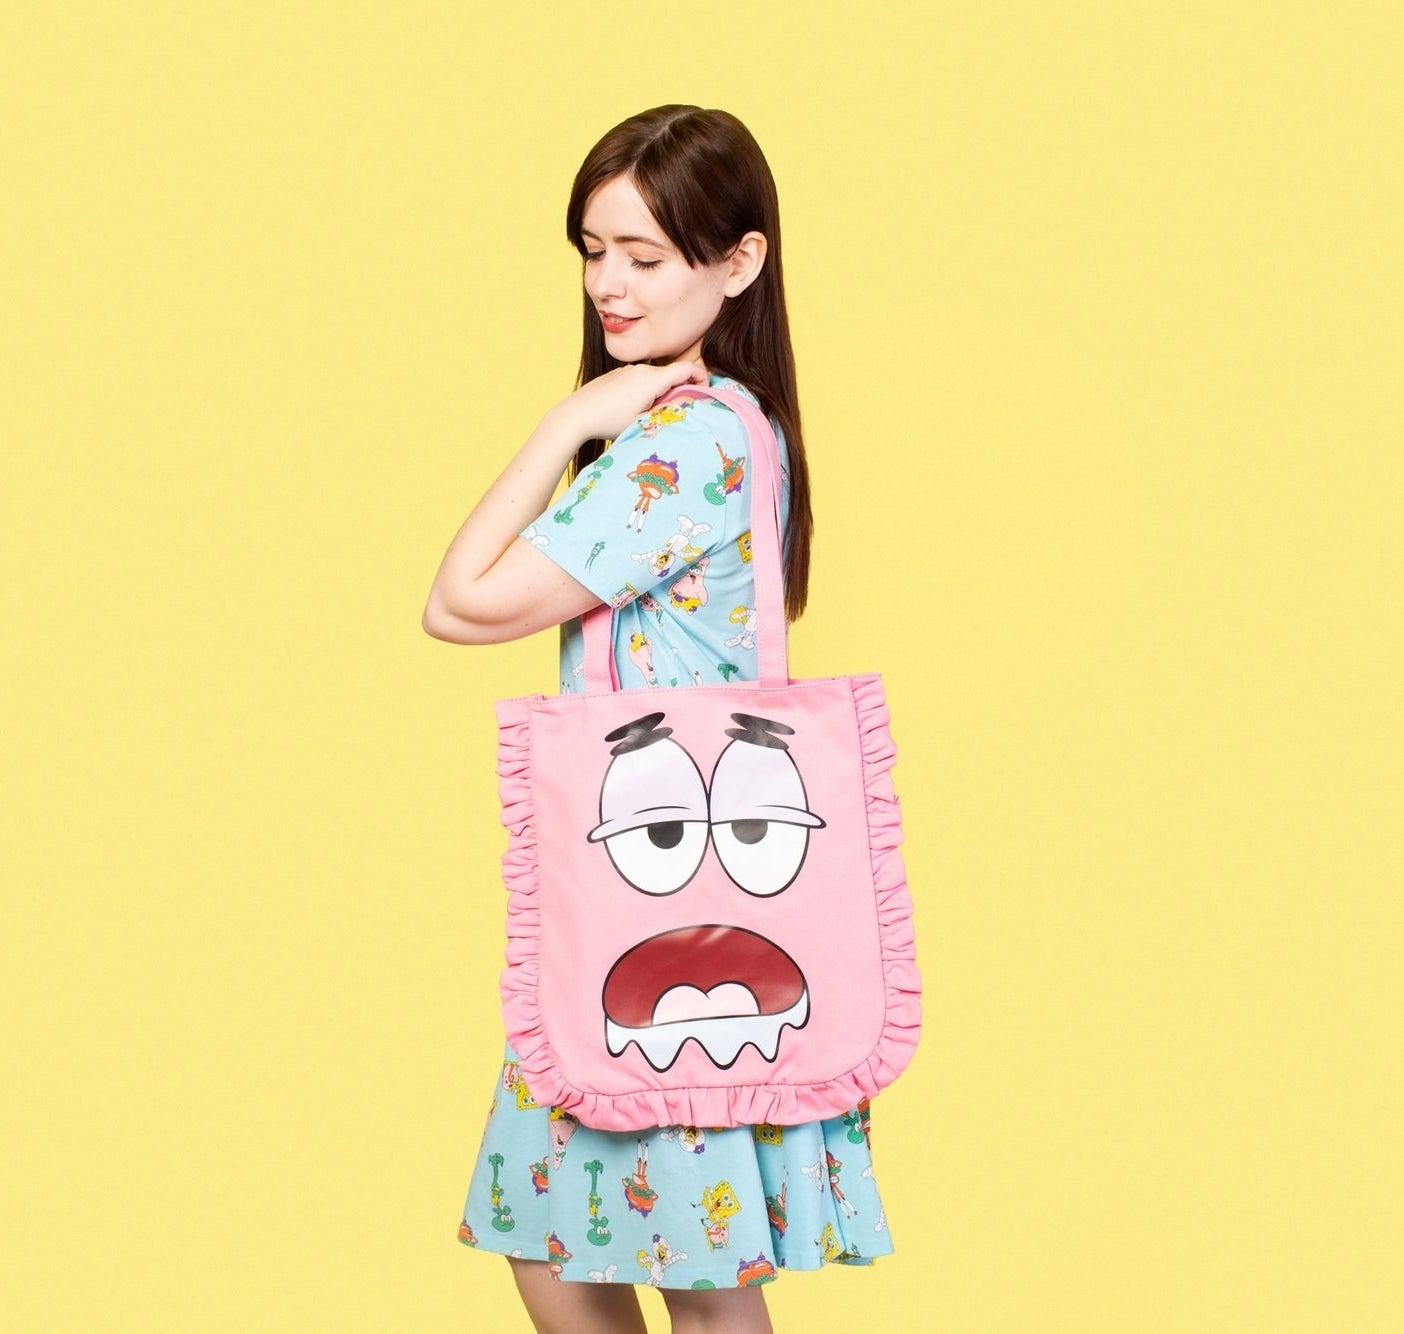 """A model carrying the pink tote with ruffles around the sides and the drooling face of Patrick Star from """"SpongeBob"""" emblazoned on it"""